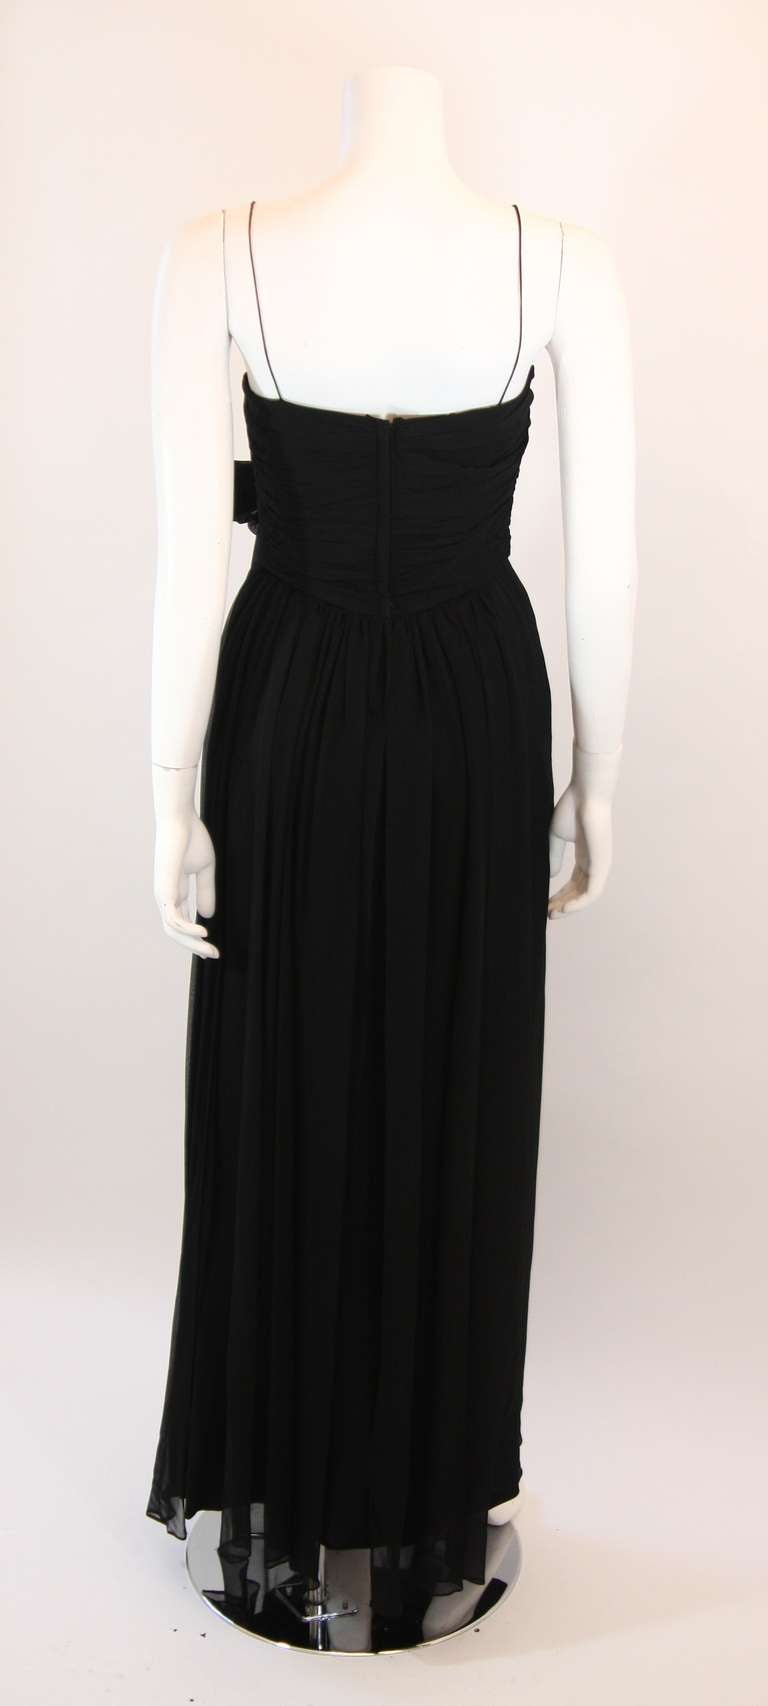 Emma Domb Black Silk Chiffon Gown Size S For Sale 2